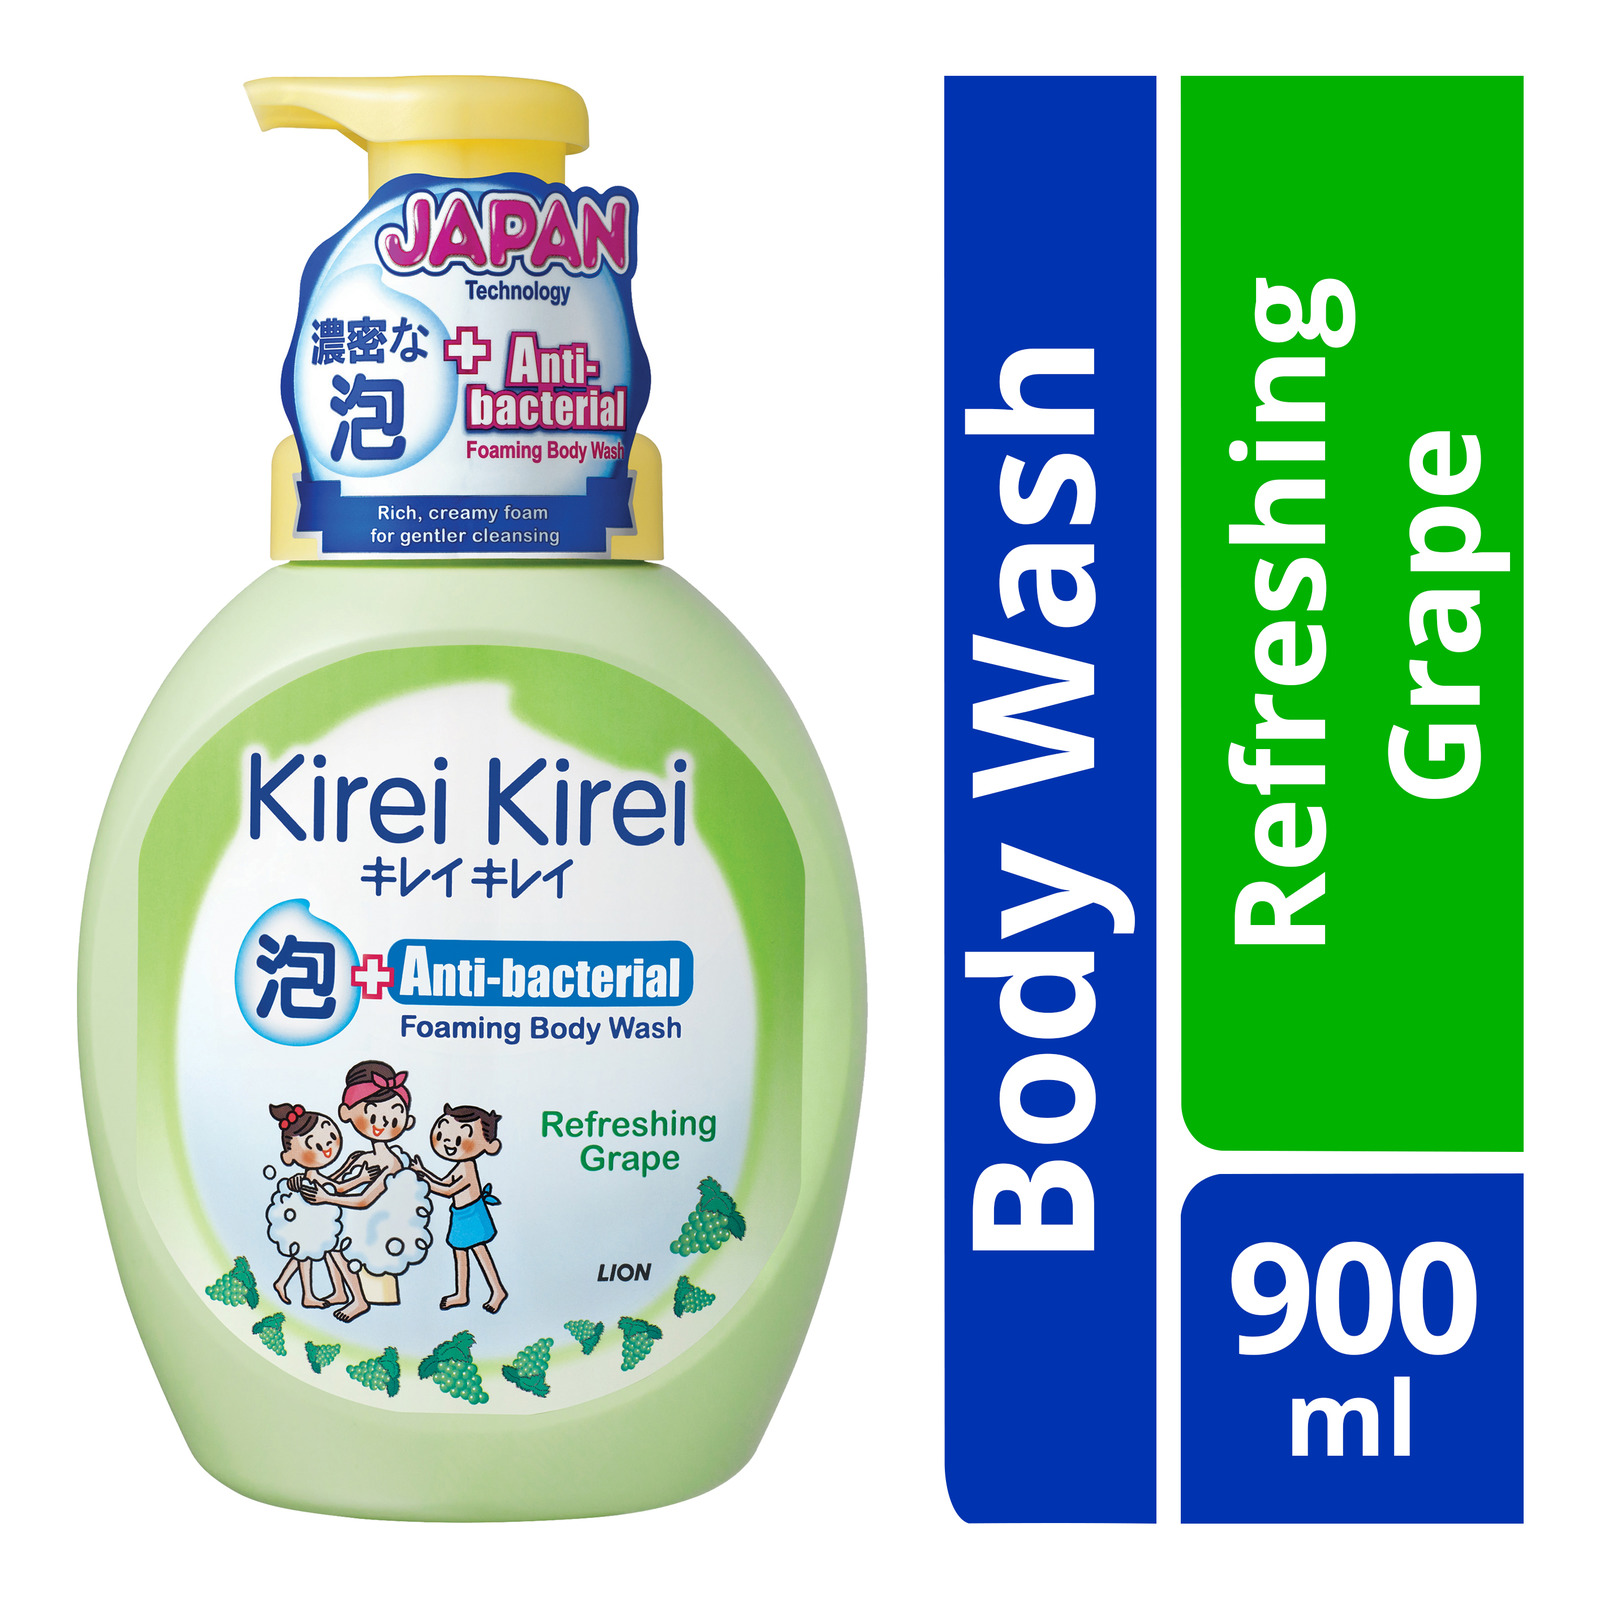 KIREI KIREI Anti-bacterial Foaming Body Wash - Grape 900ml